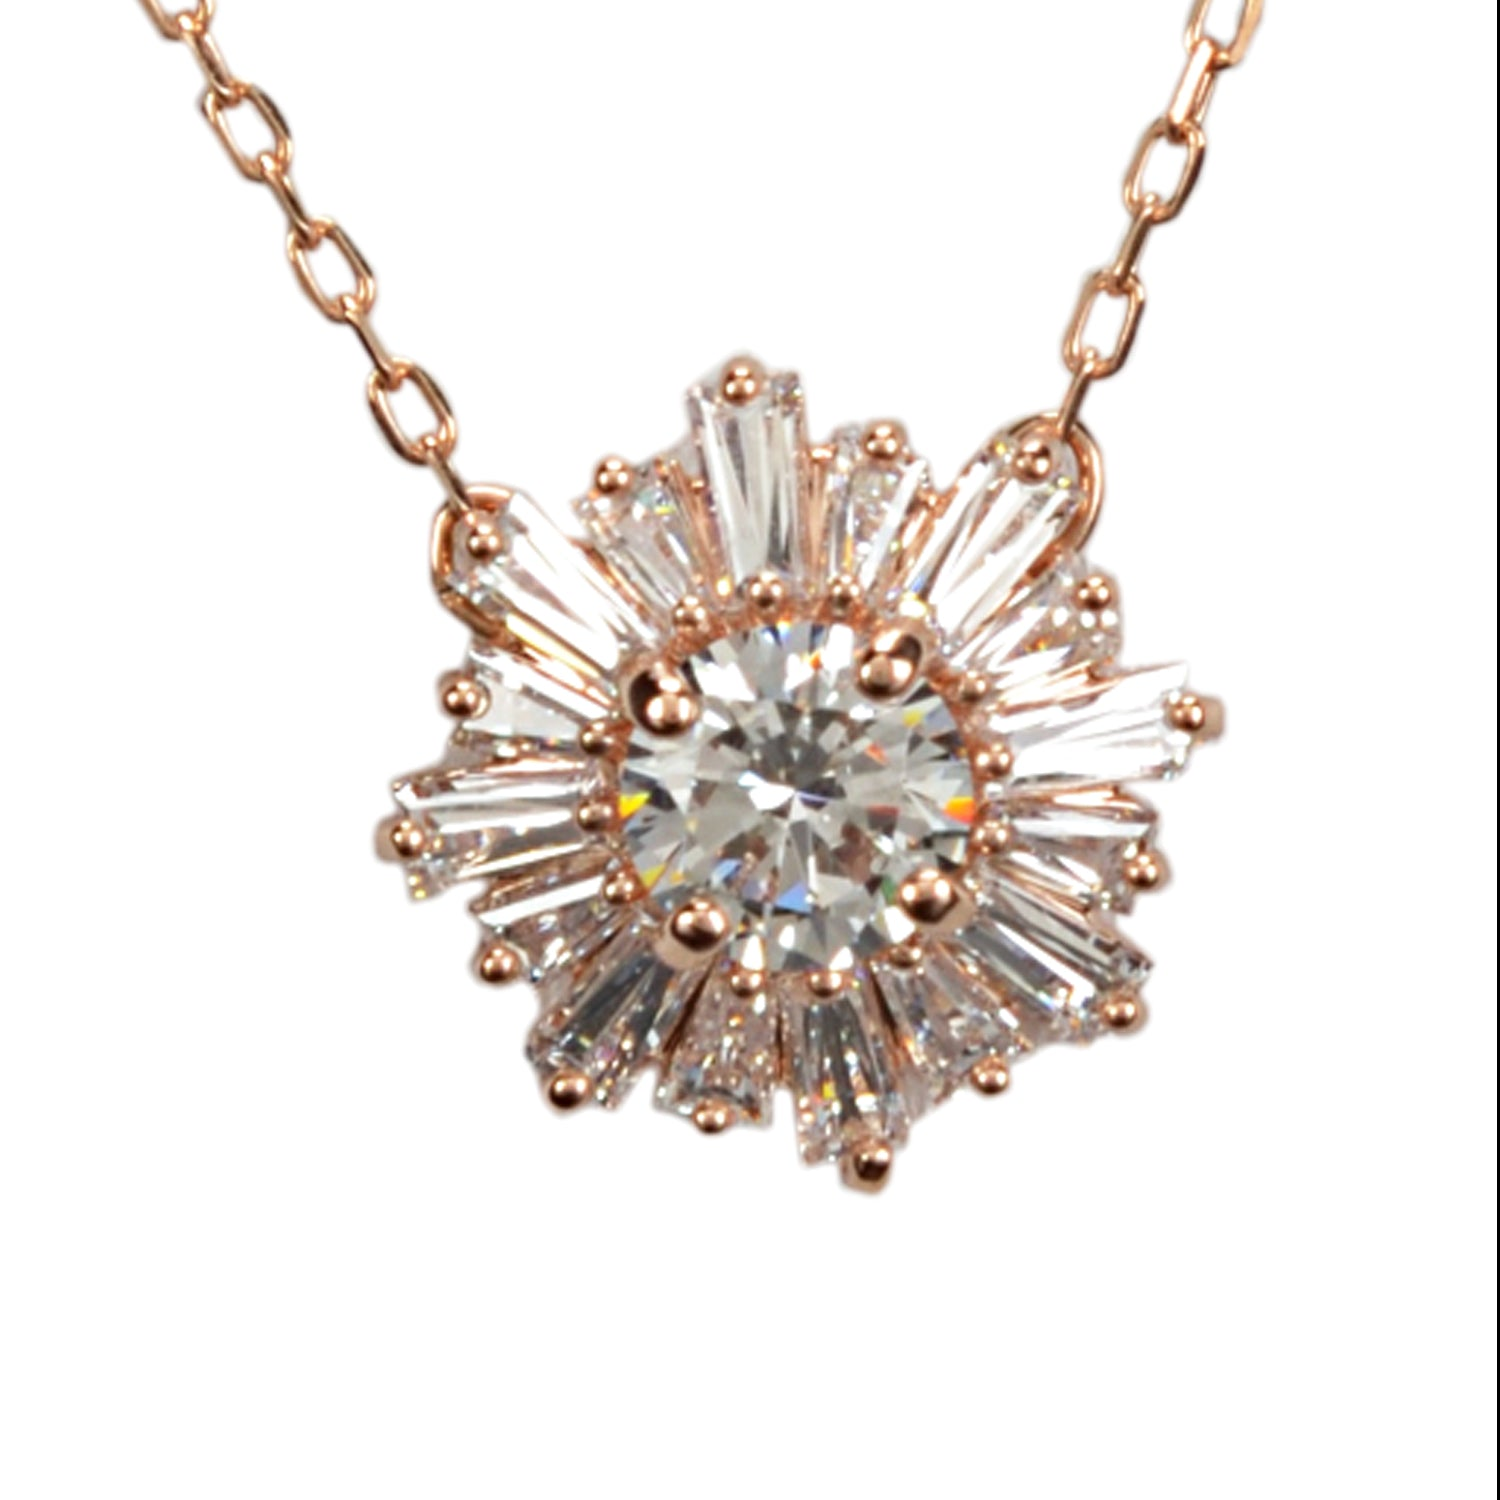 Swarovski Sunshine White Pendant In Rose-Gold Tone Plated | Shop Luxury Swarovski Necklace Online